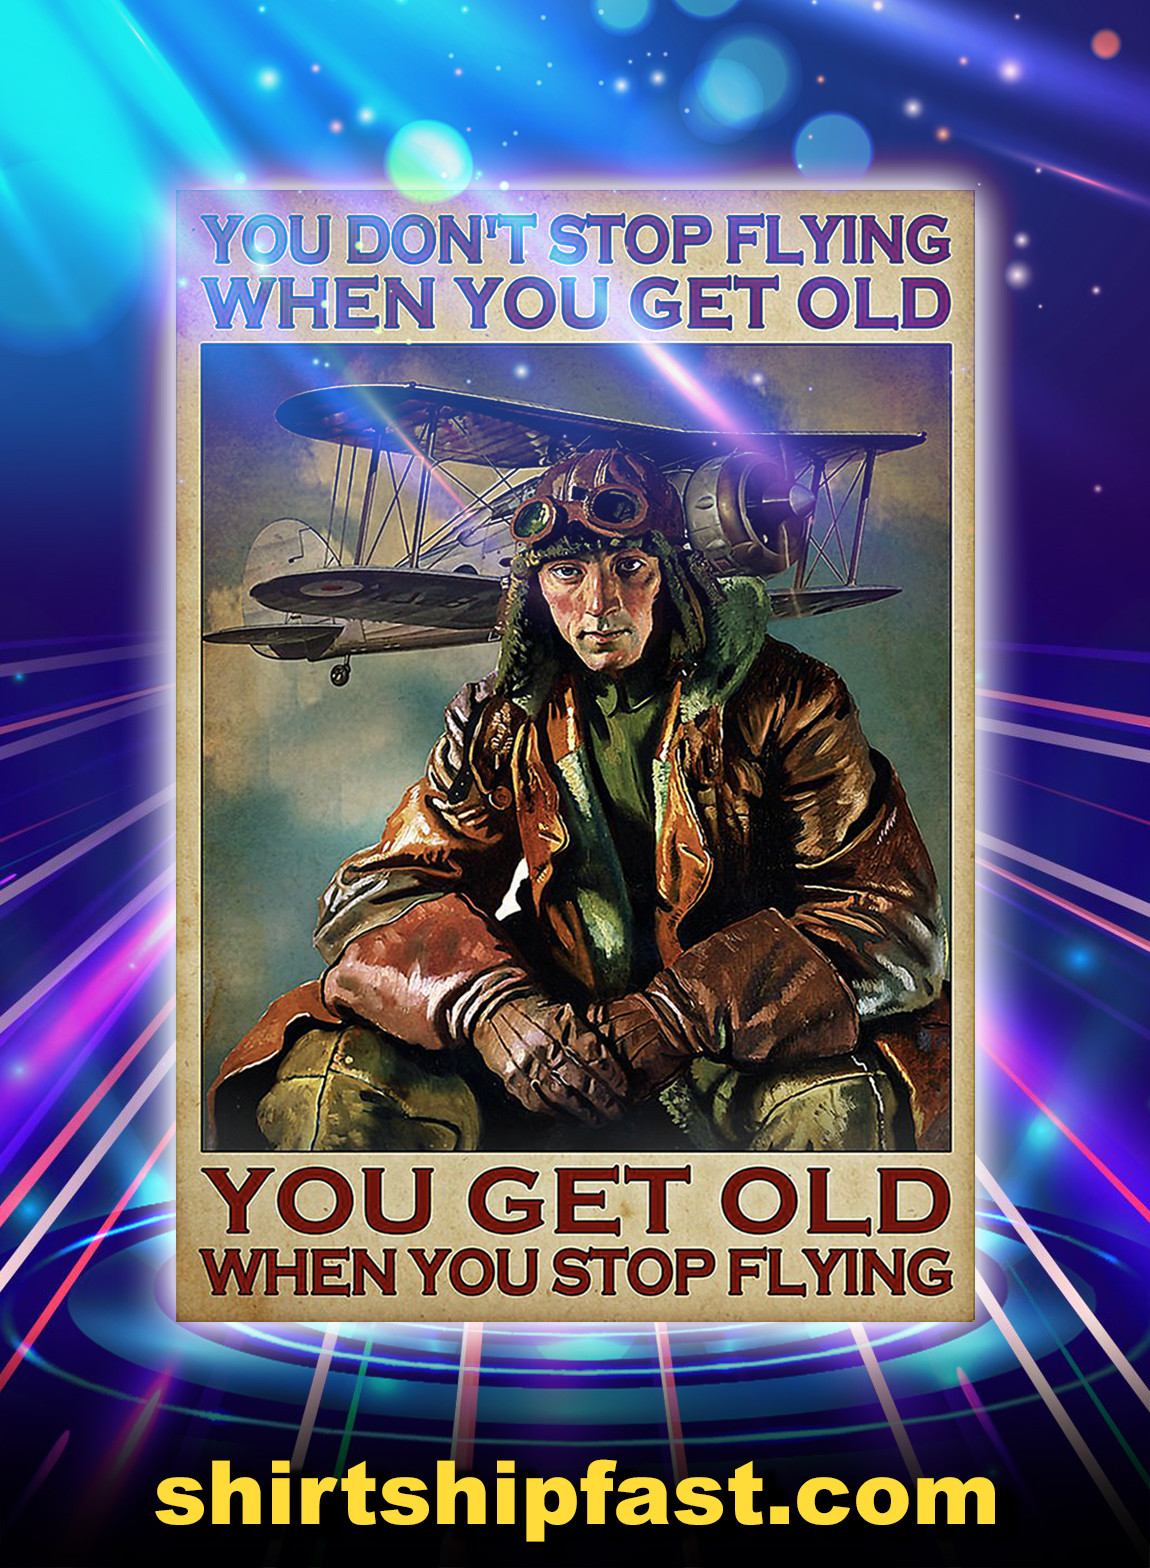 You don't stop flying when you get old pilot poster - A2